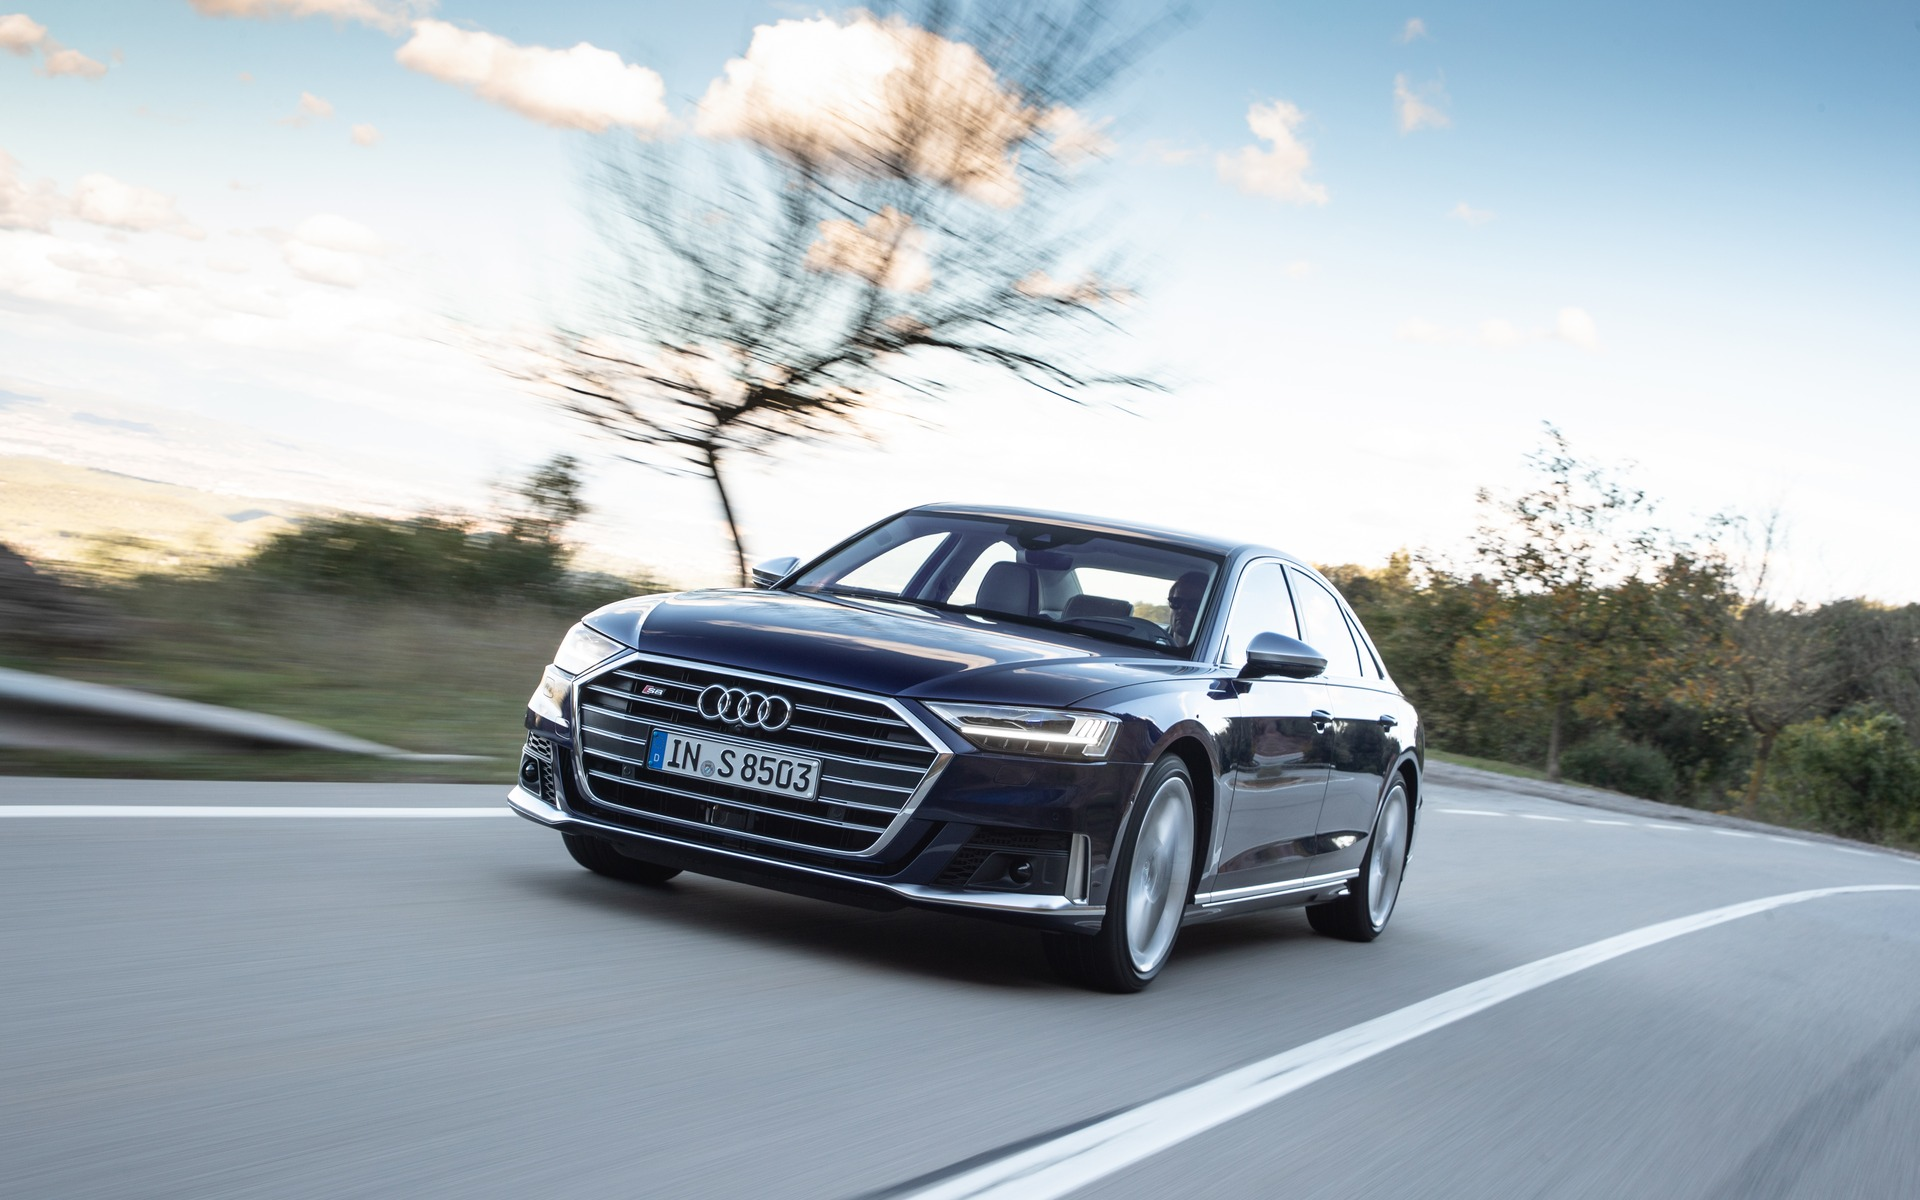 2020 Audi S8 High End Luxury With A Sporty Twist The Car Guide